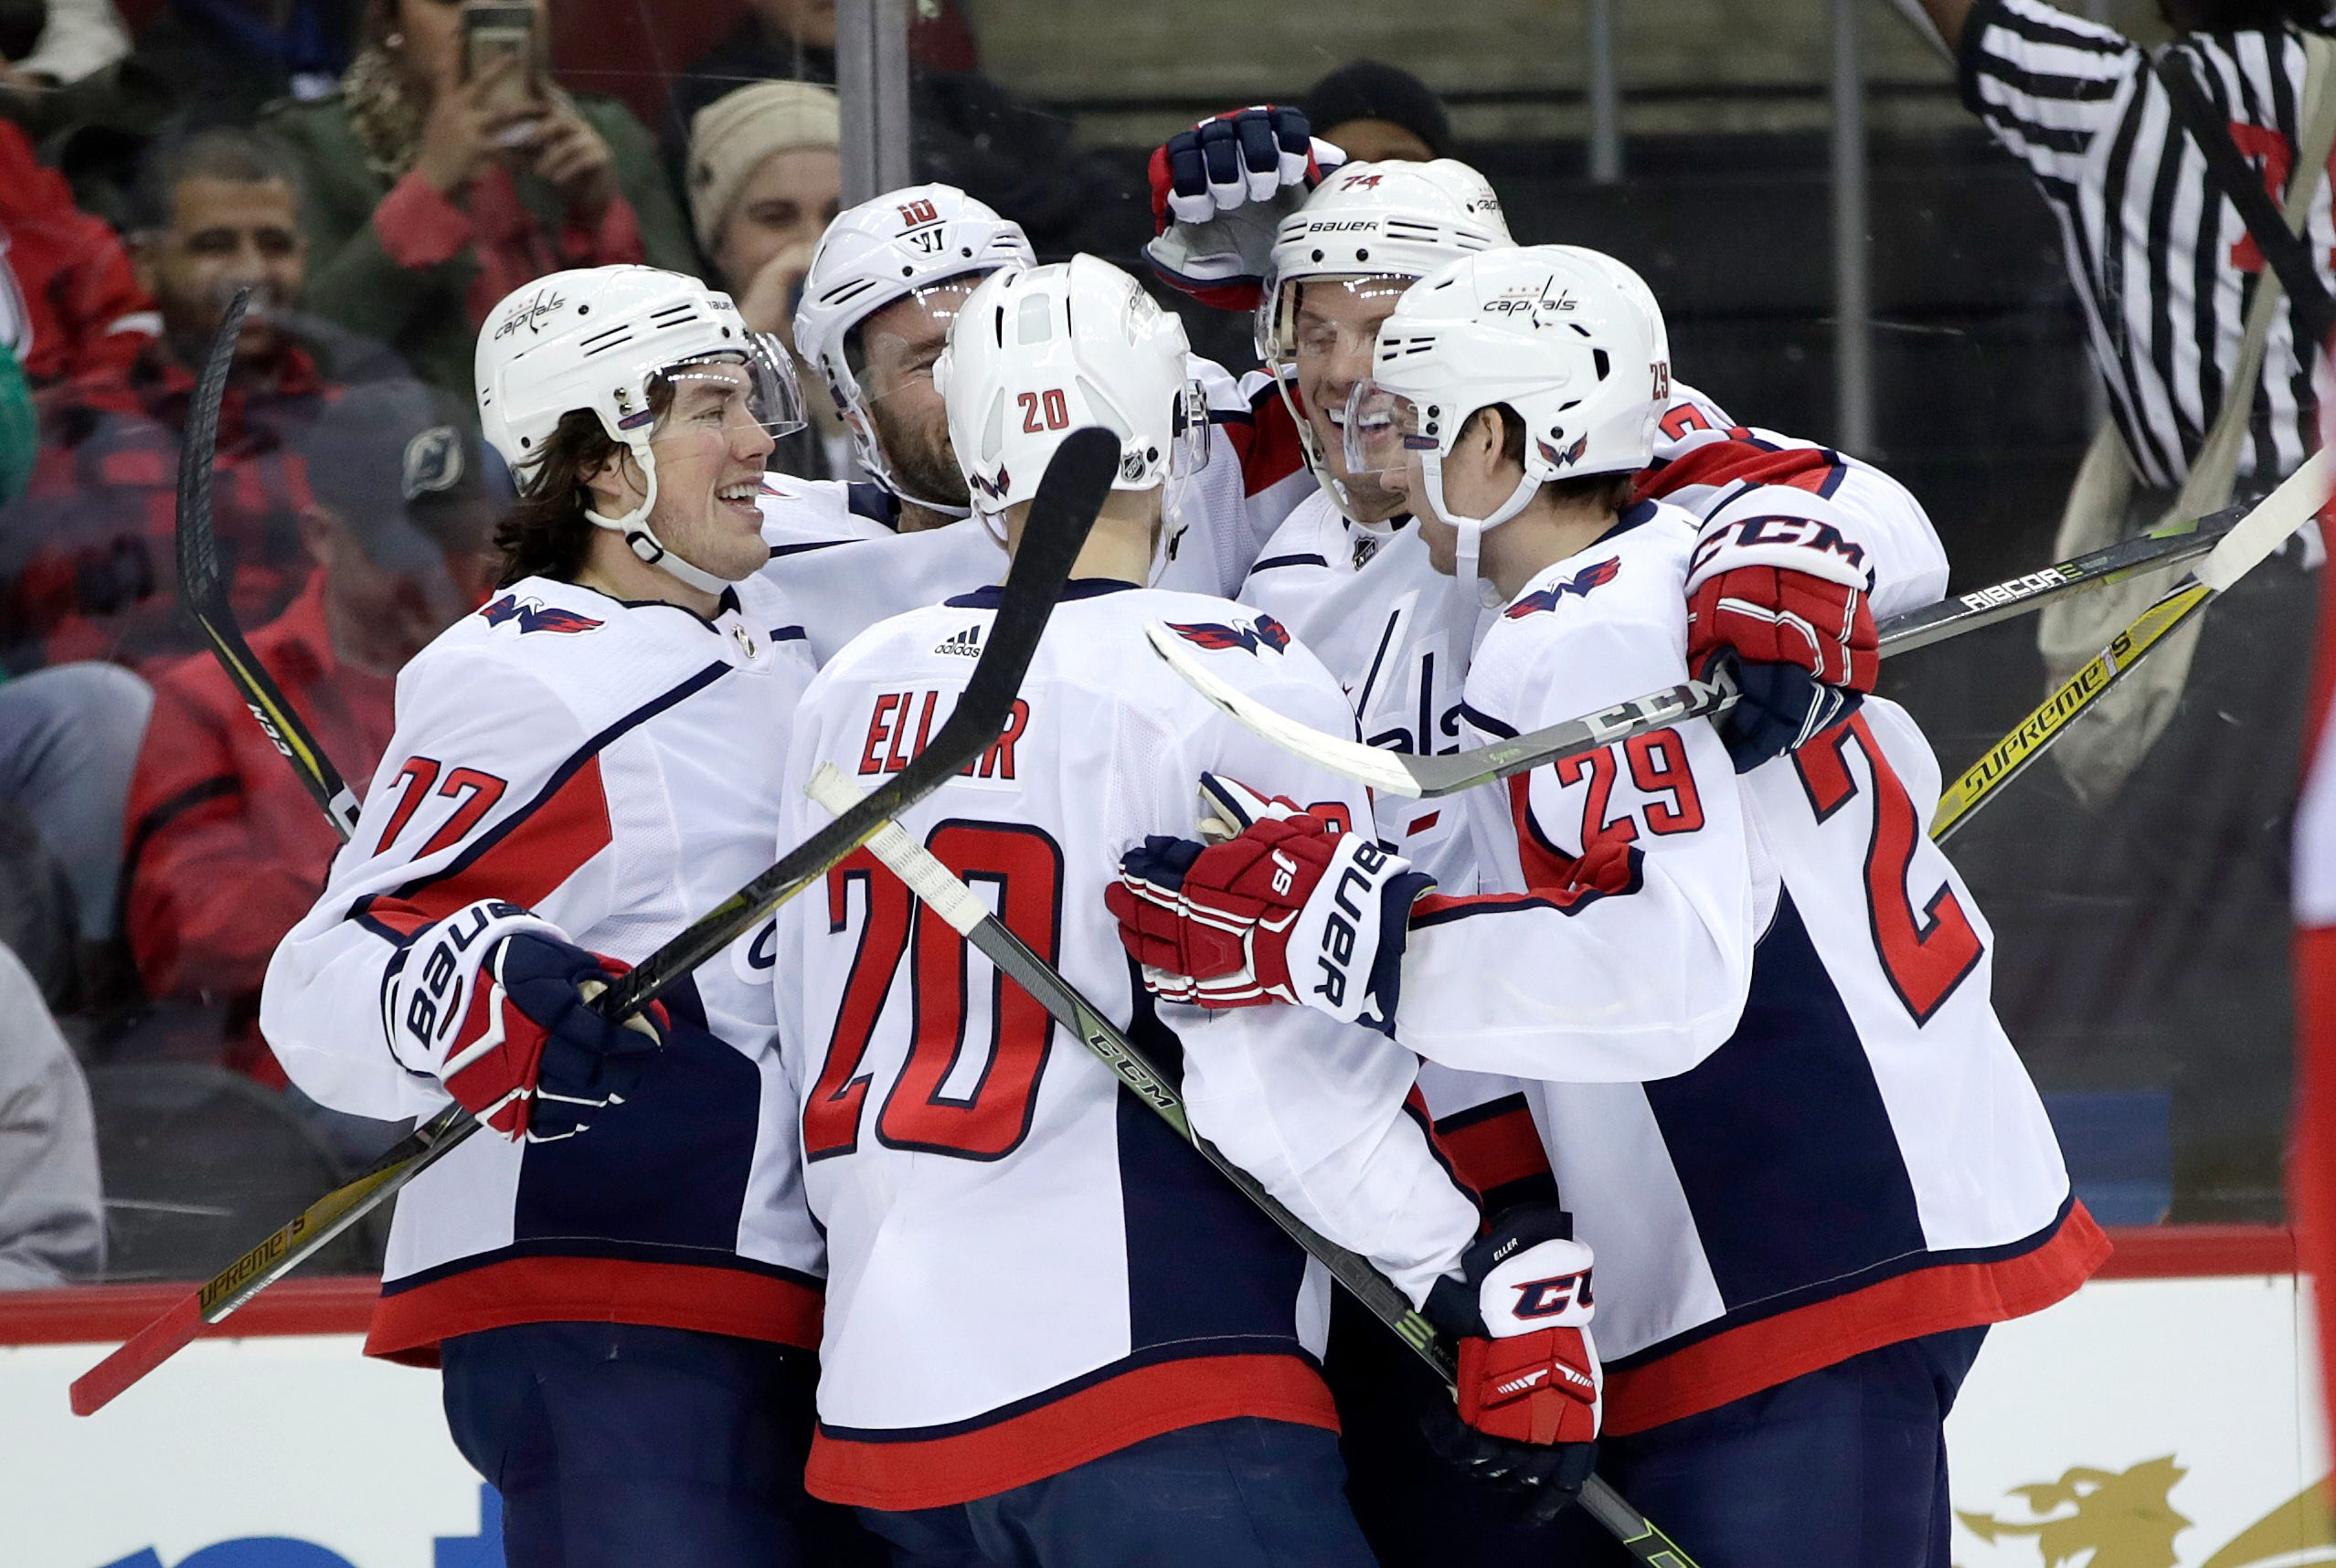 Hall's overtime goal gives Devils 4-3 win over Capitals